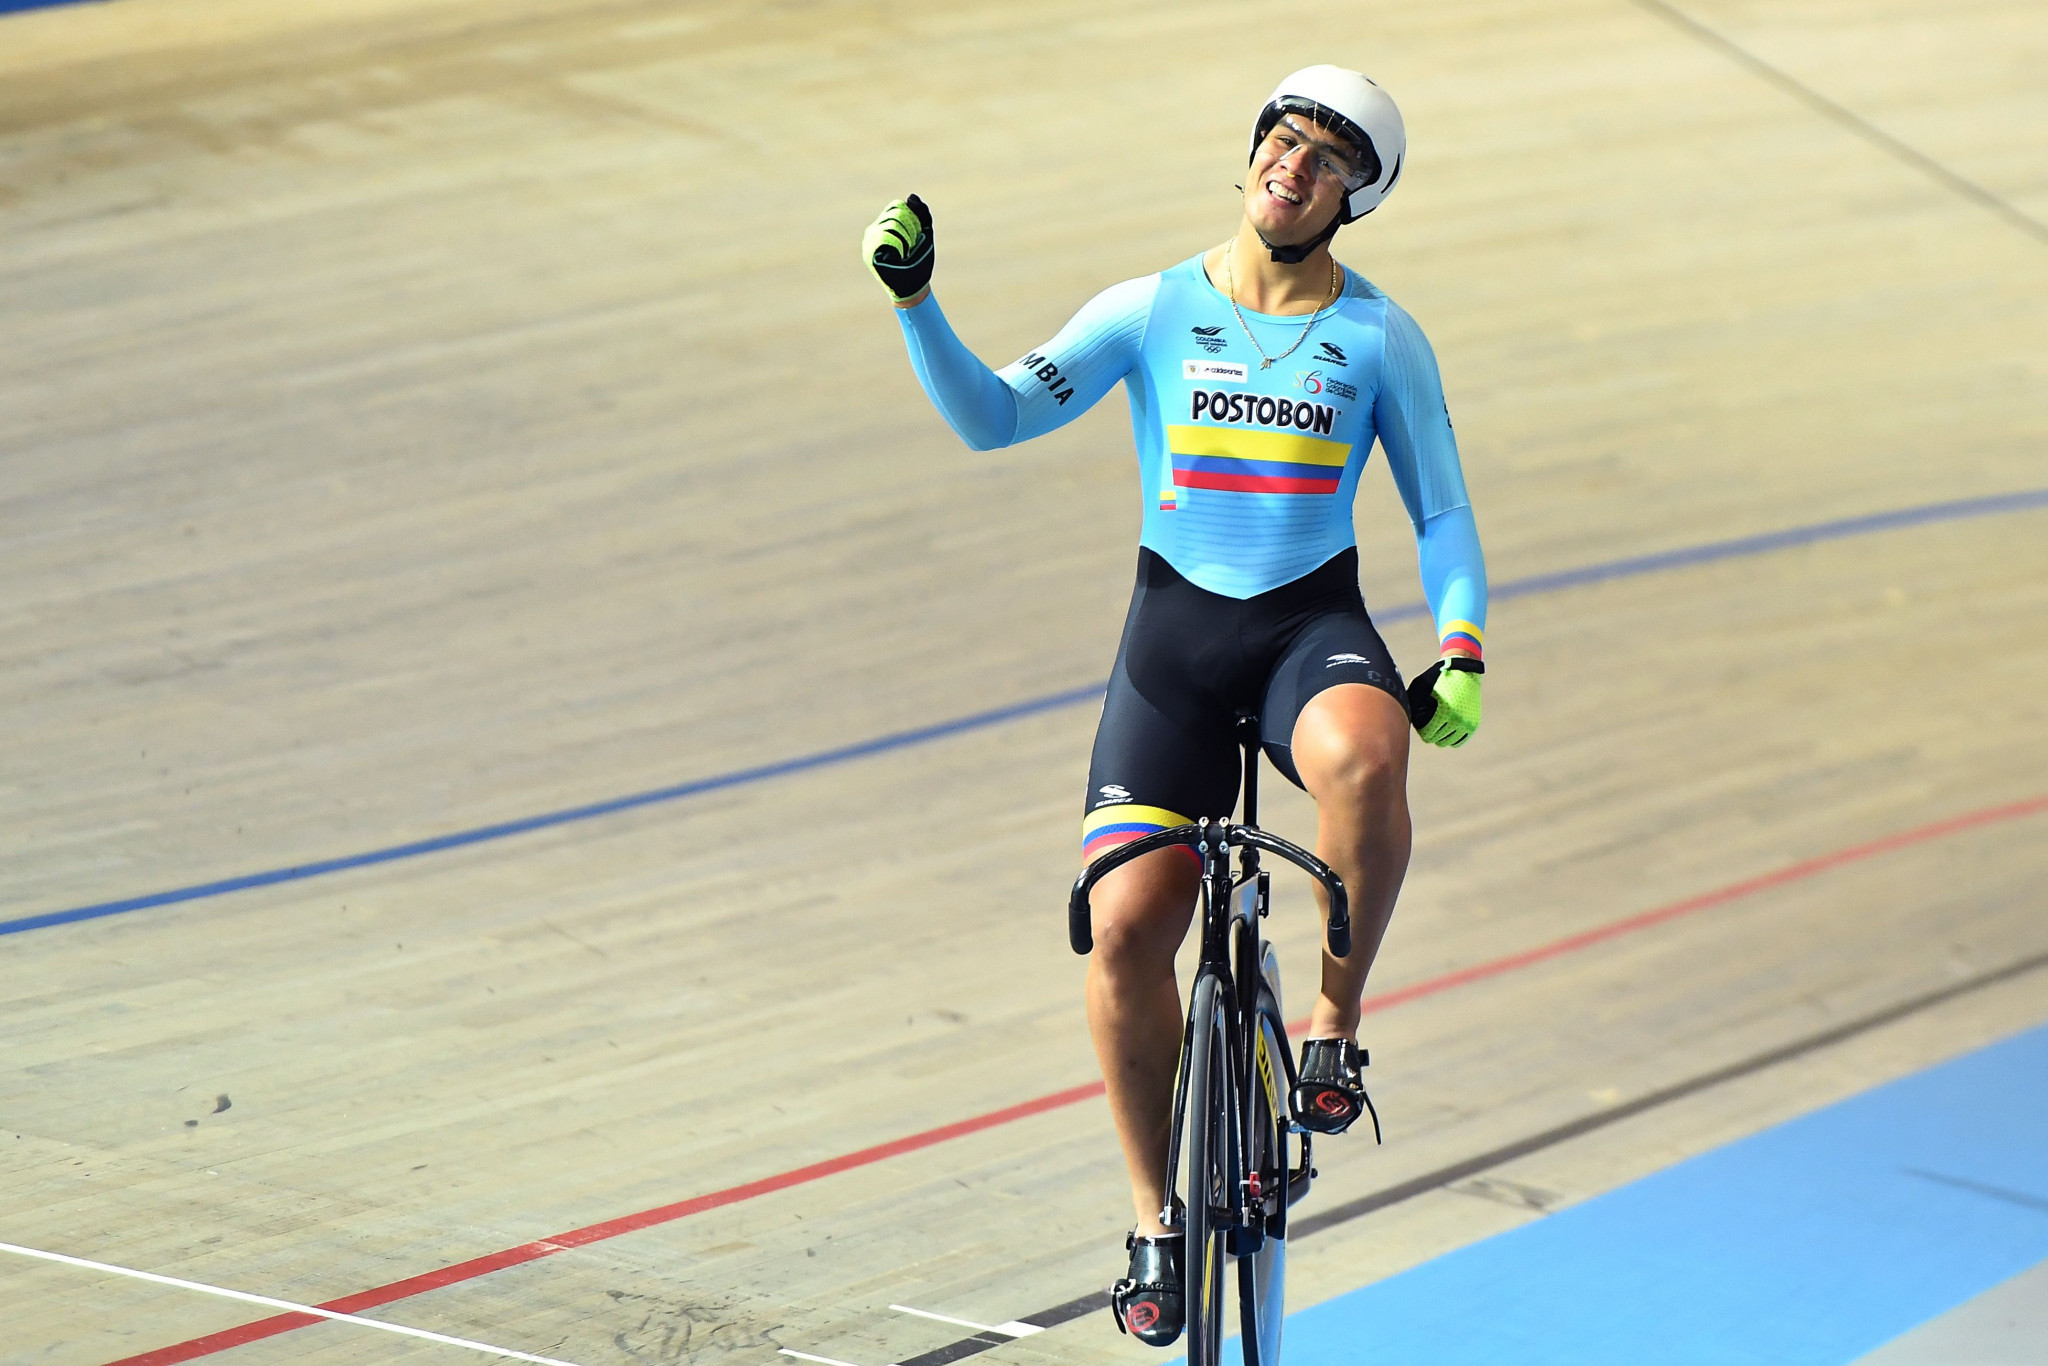 Colombian keirin world champion Puerta suspended by UCI after testing positive for banned steroid